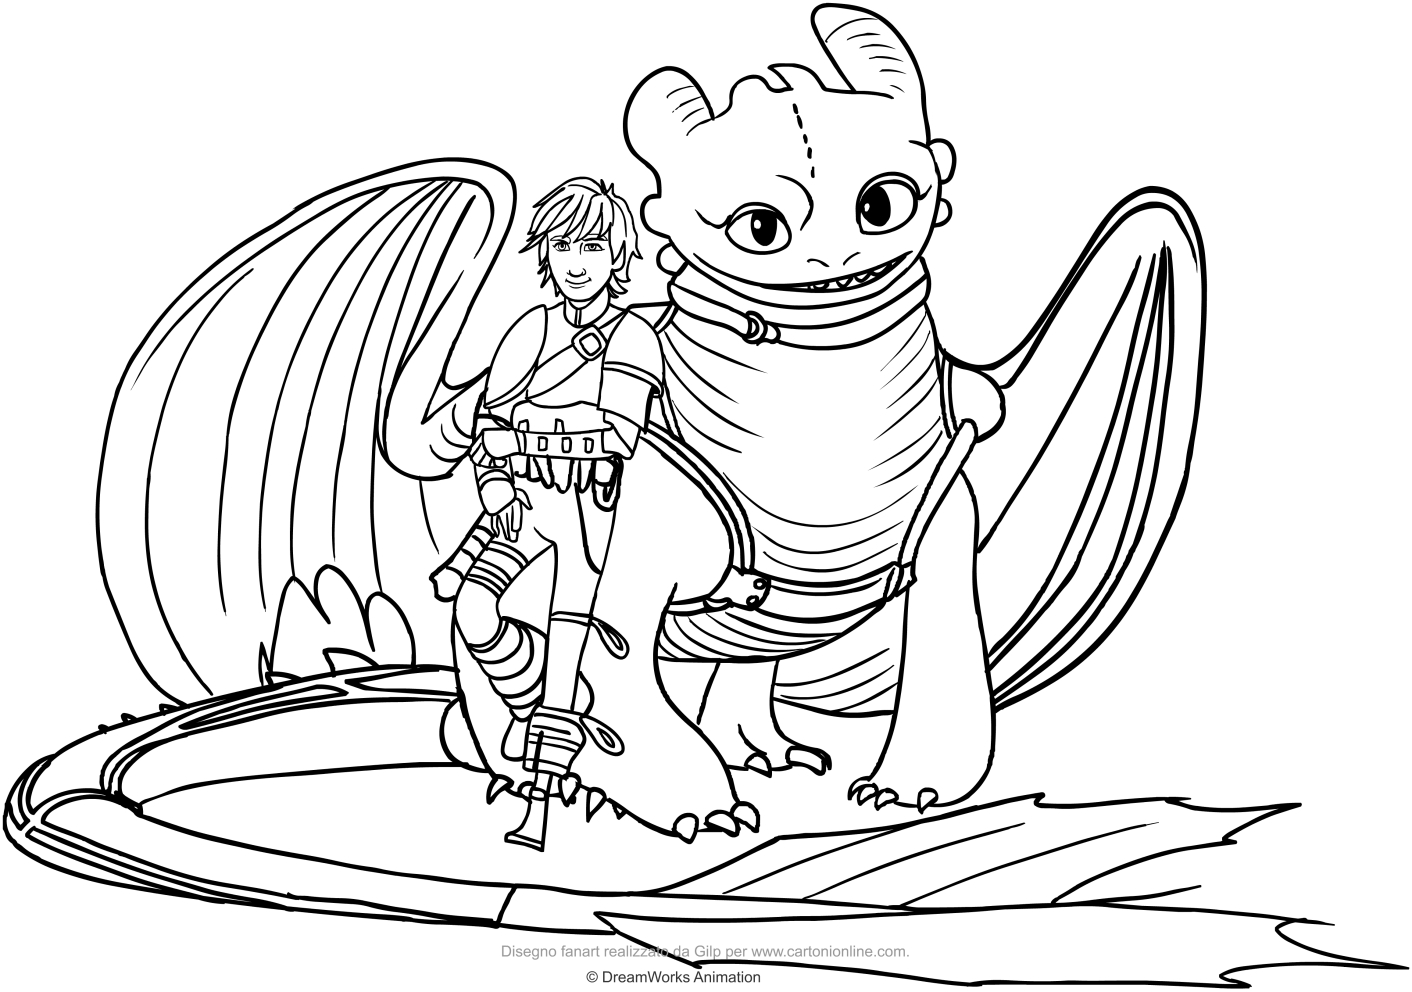 Dreamworks Coloring Pages At Getdrawings Com Free For Personal Use